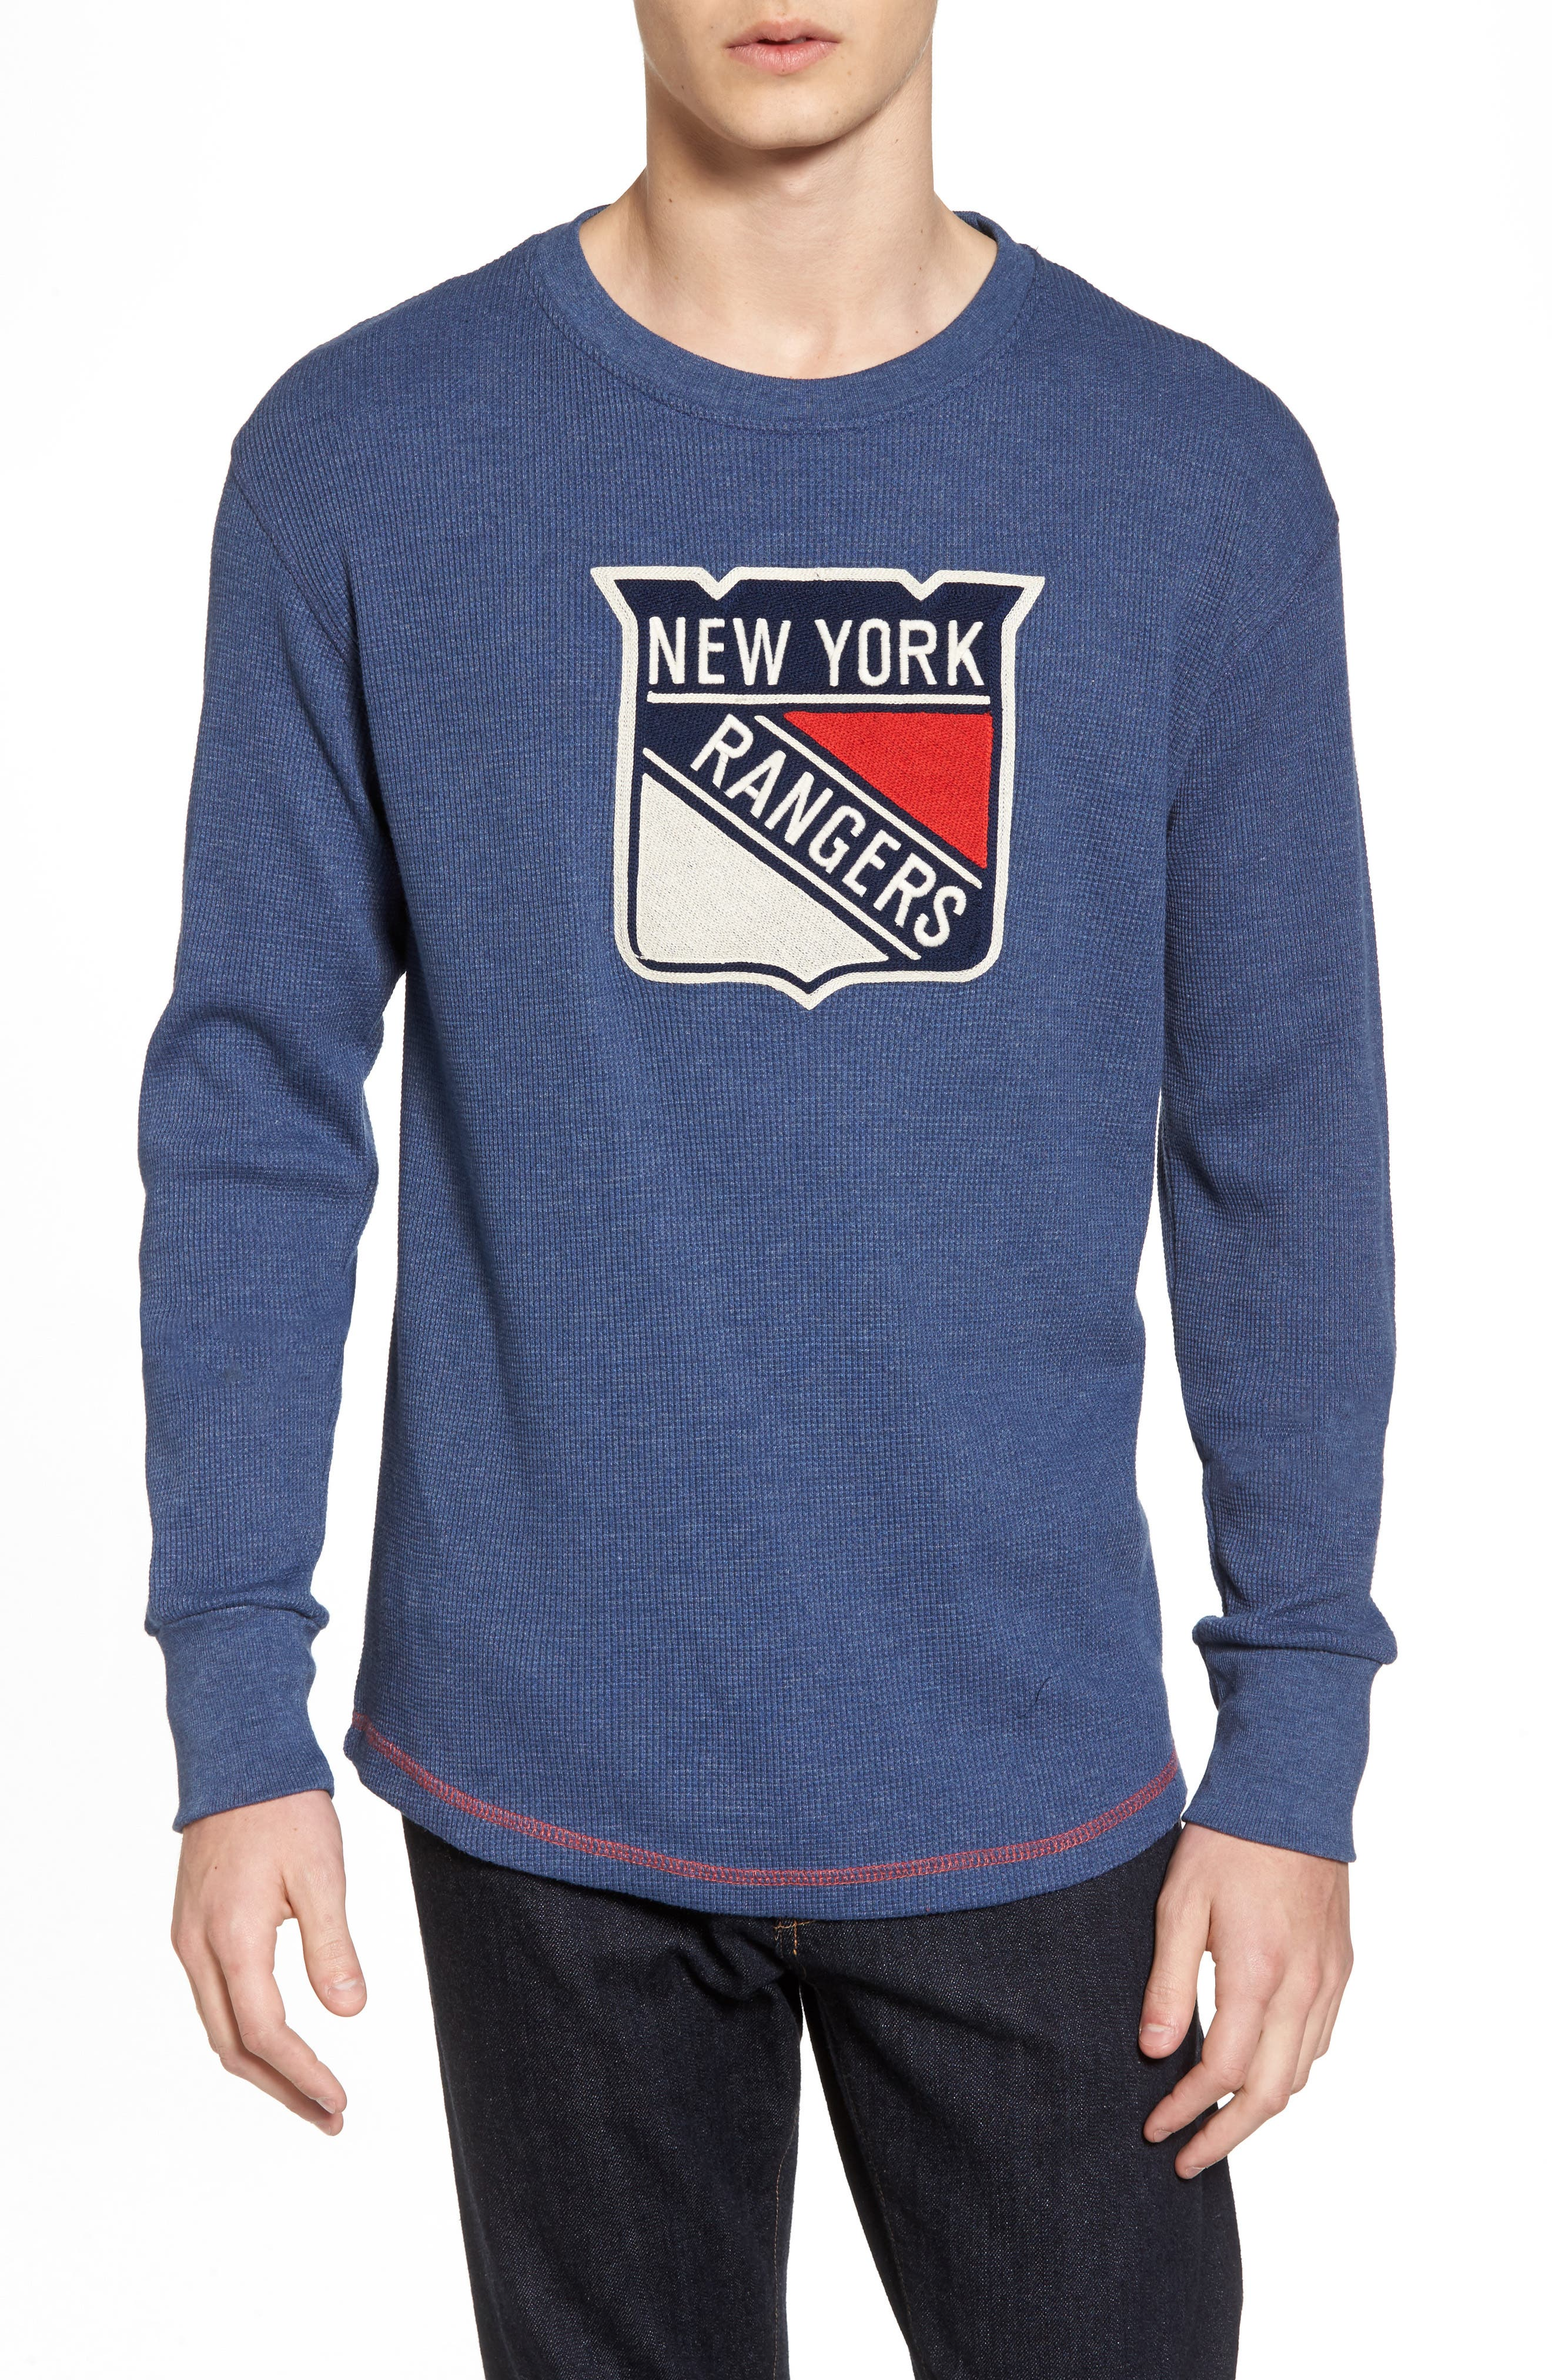 New York Rangers Embroidered Long Sleeve Thermal Shirt,                         Main,                         color, Navy